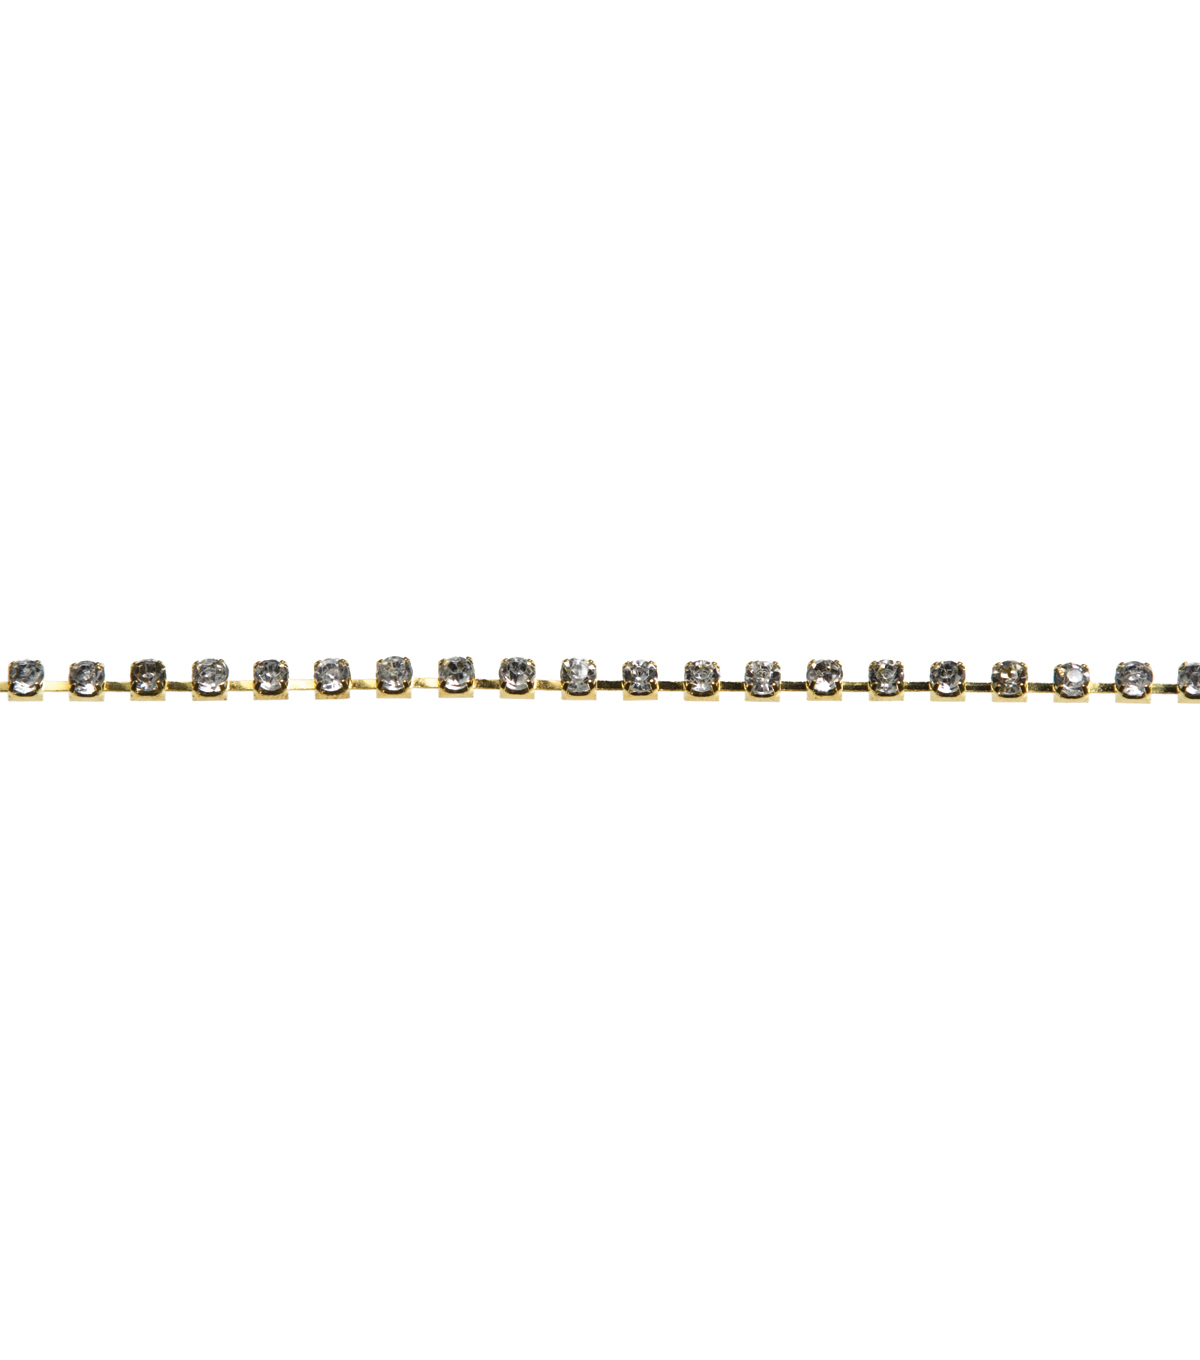 Jewelry Basics Single Strand Rhinestone Chain-22 Inch Crystal/Gold